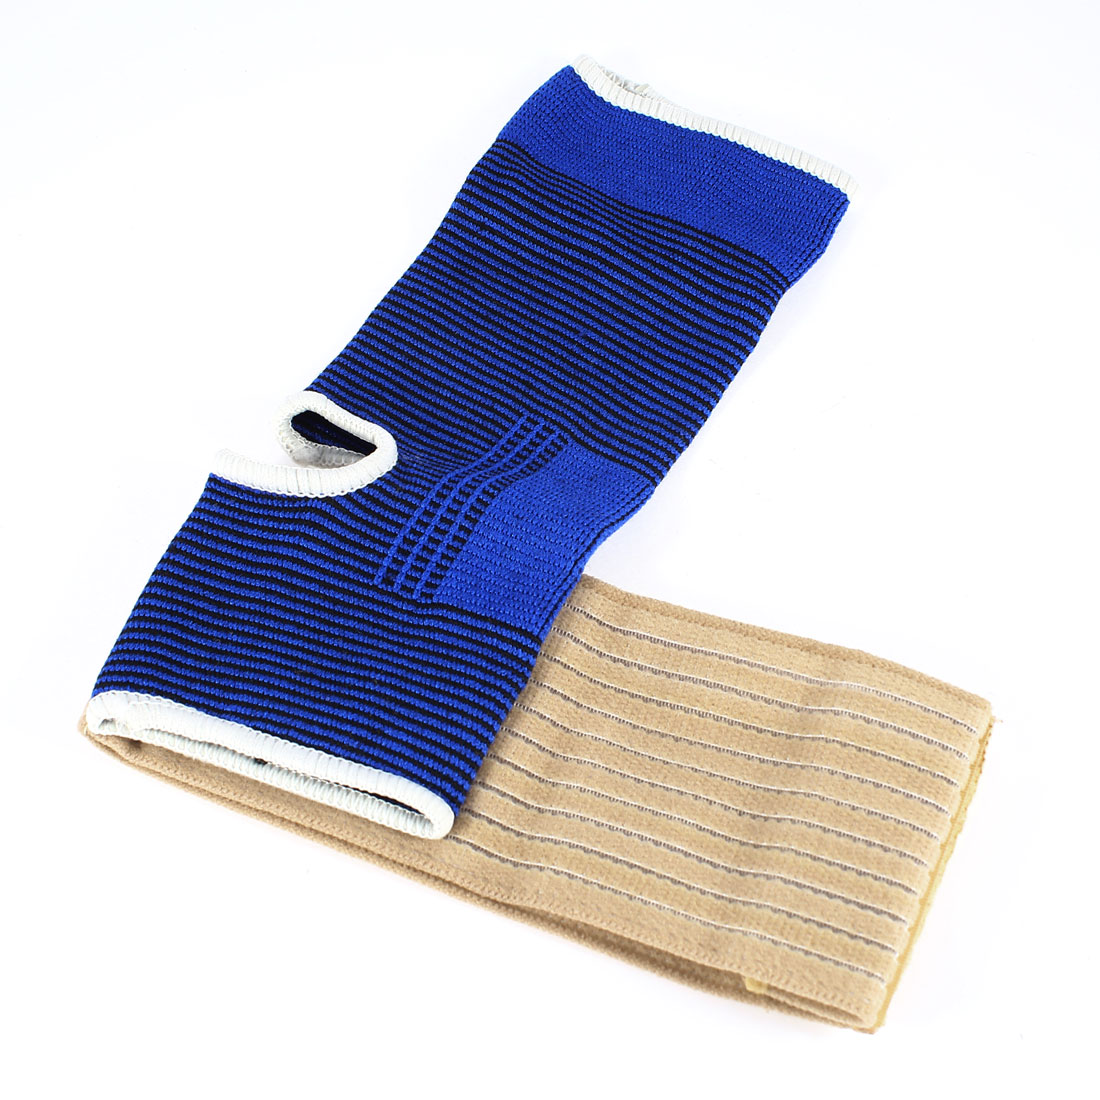 Football Fastener Band Ankle Support Guard Blue Beige